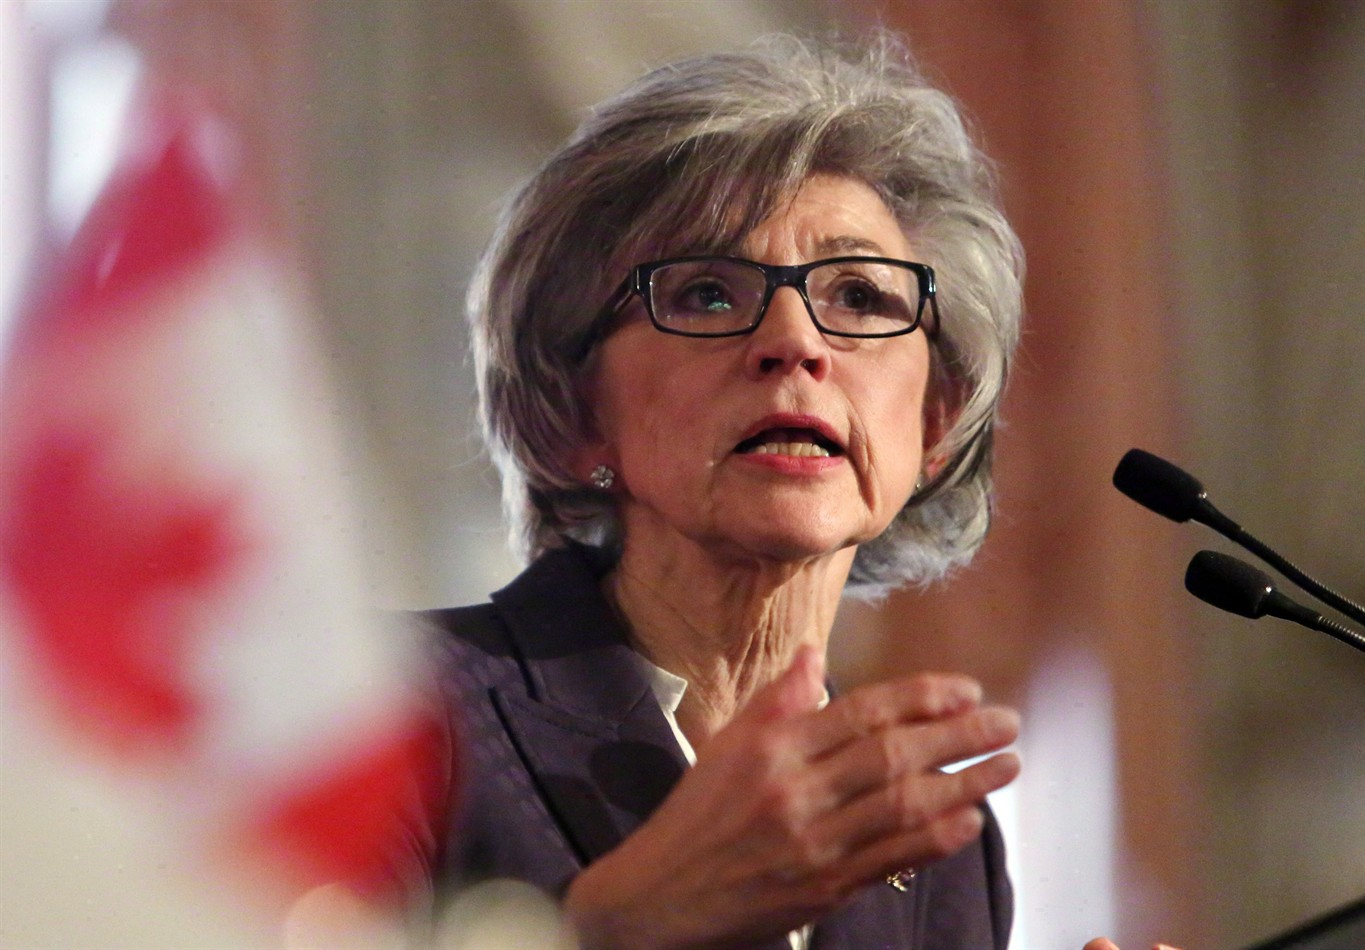 Canada's chief justice, first woman to hold job, to retire this year